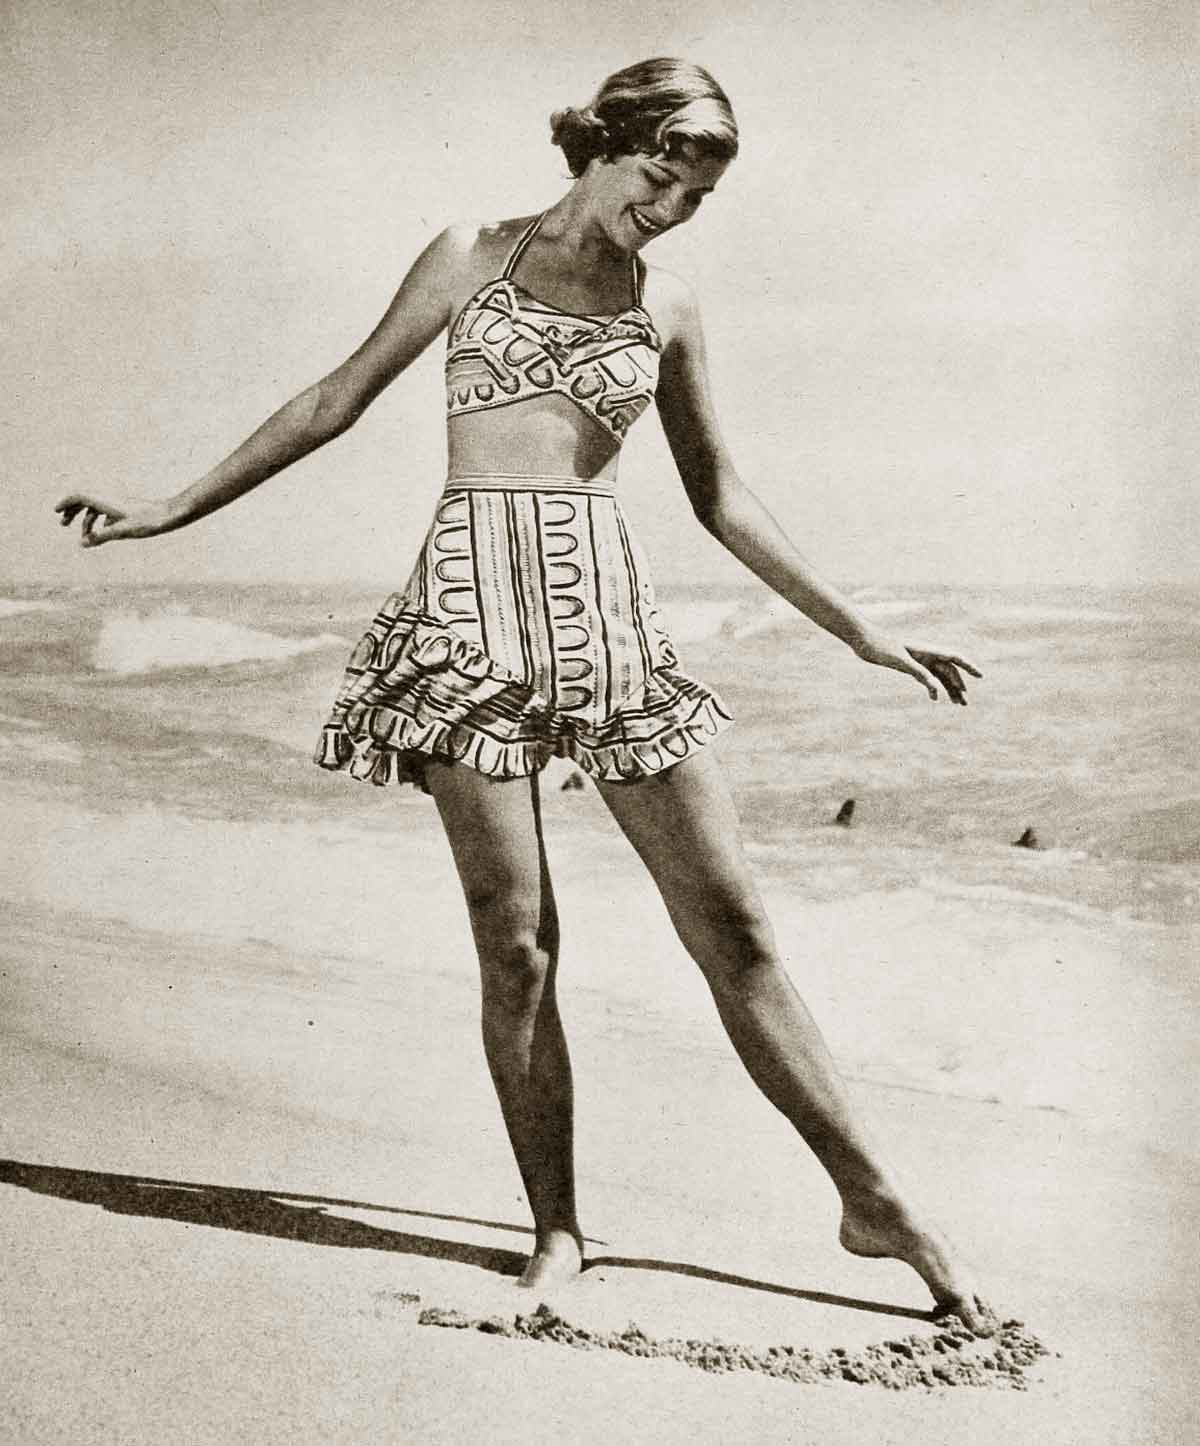 1940s-Fashion---Summer-Frock-and-Swimsuit-Styles-7